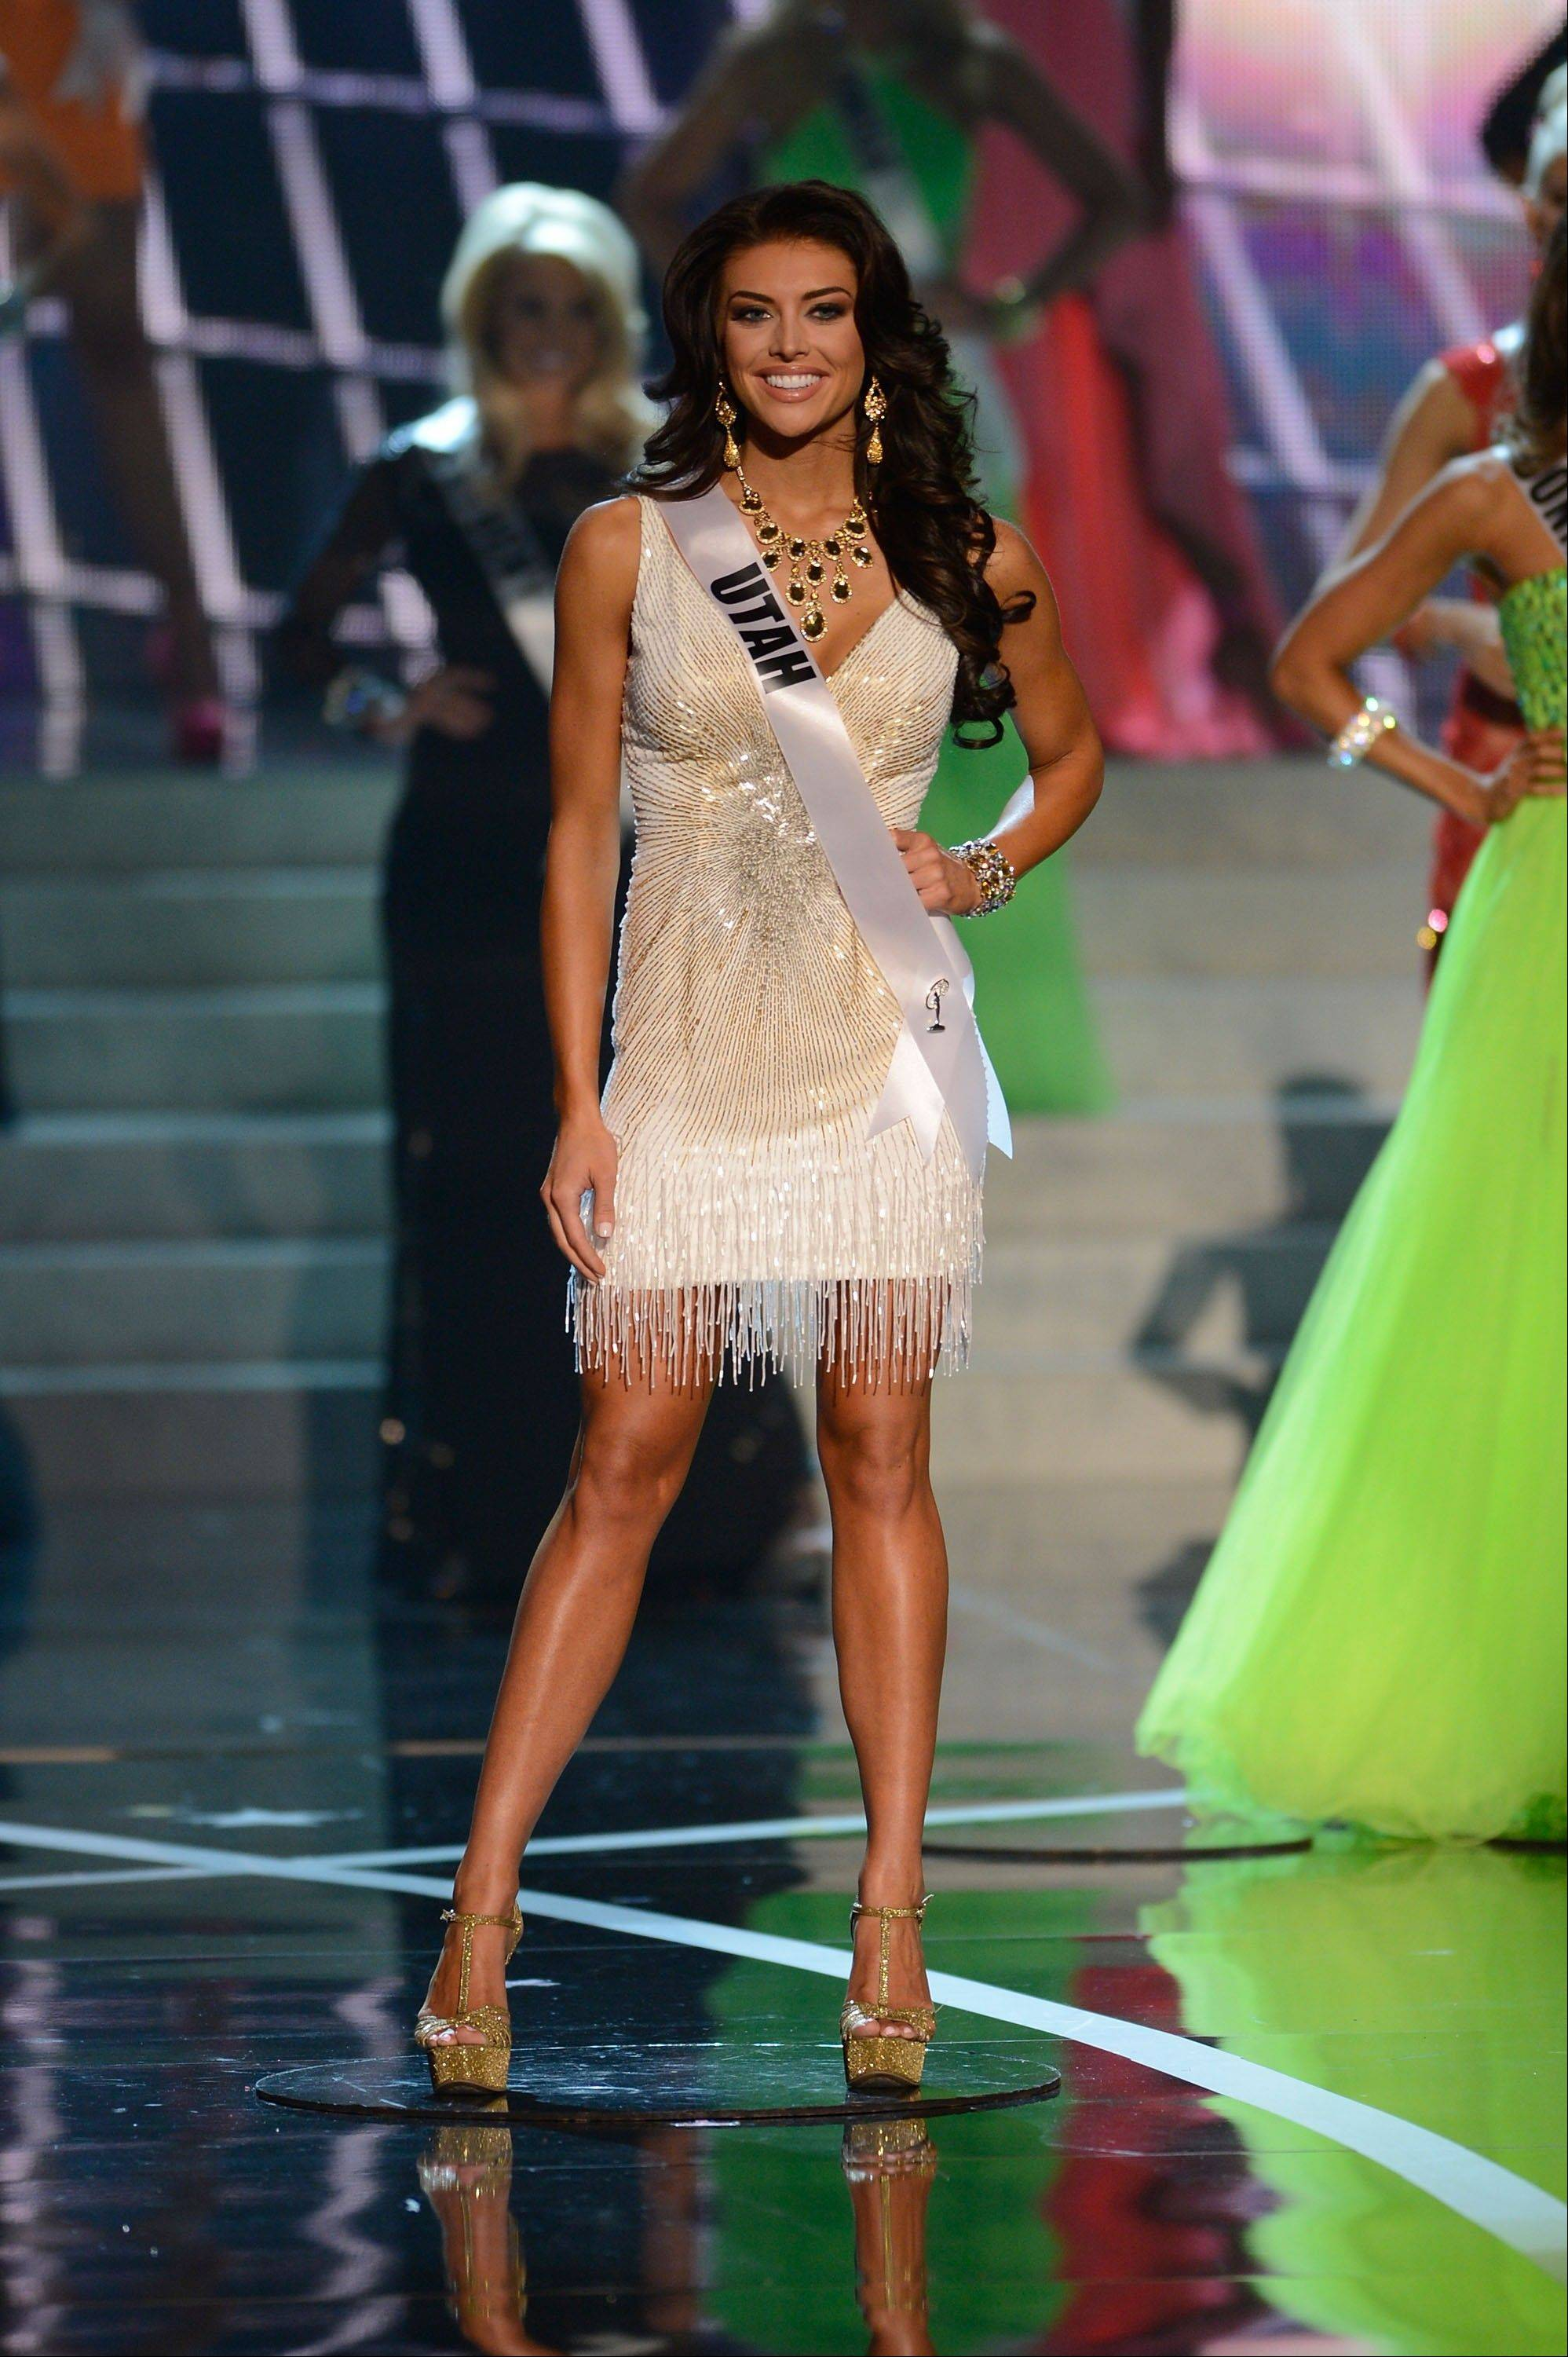 Miss Utah Marissa Powell walks the runway during the introductions of the Miss USA 2013 pageant, Sunday, June 16, 2013, in Las Vegas.